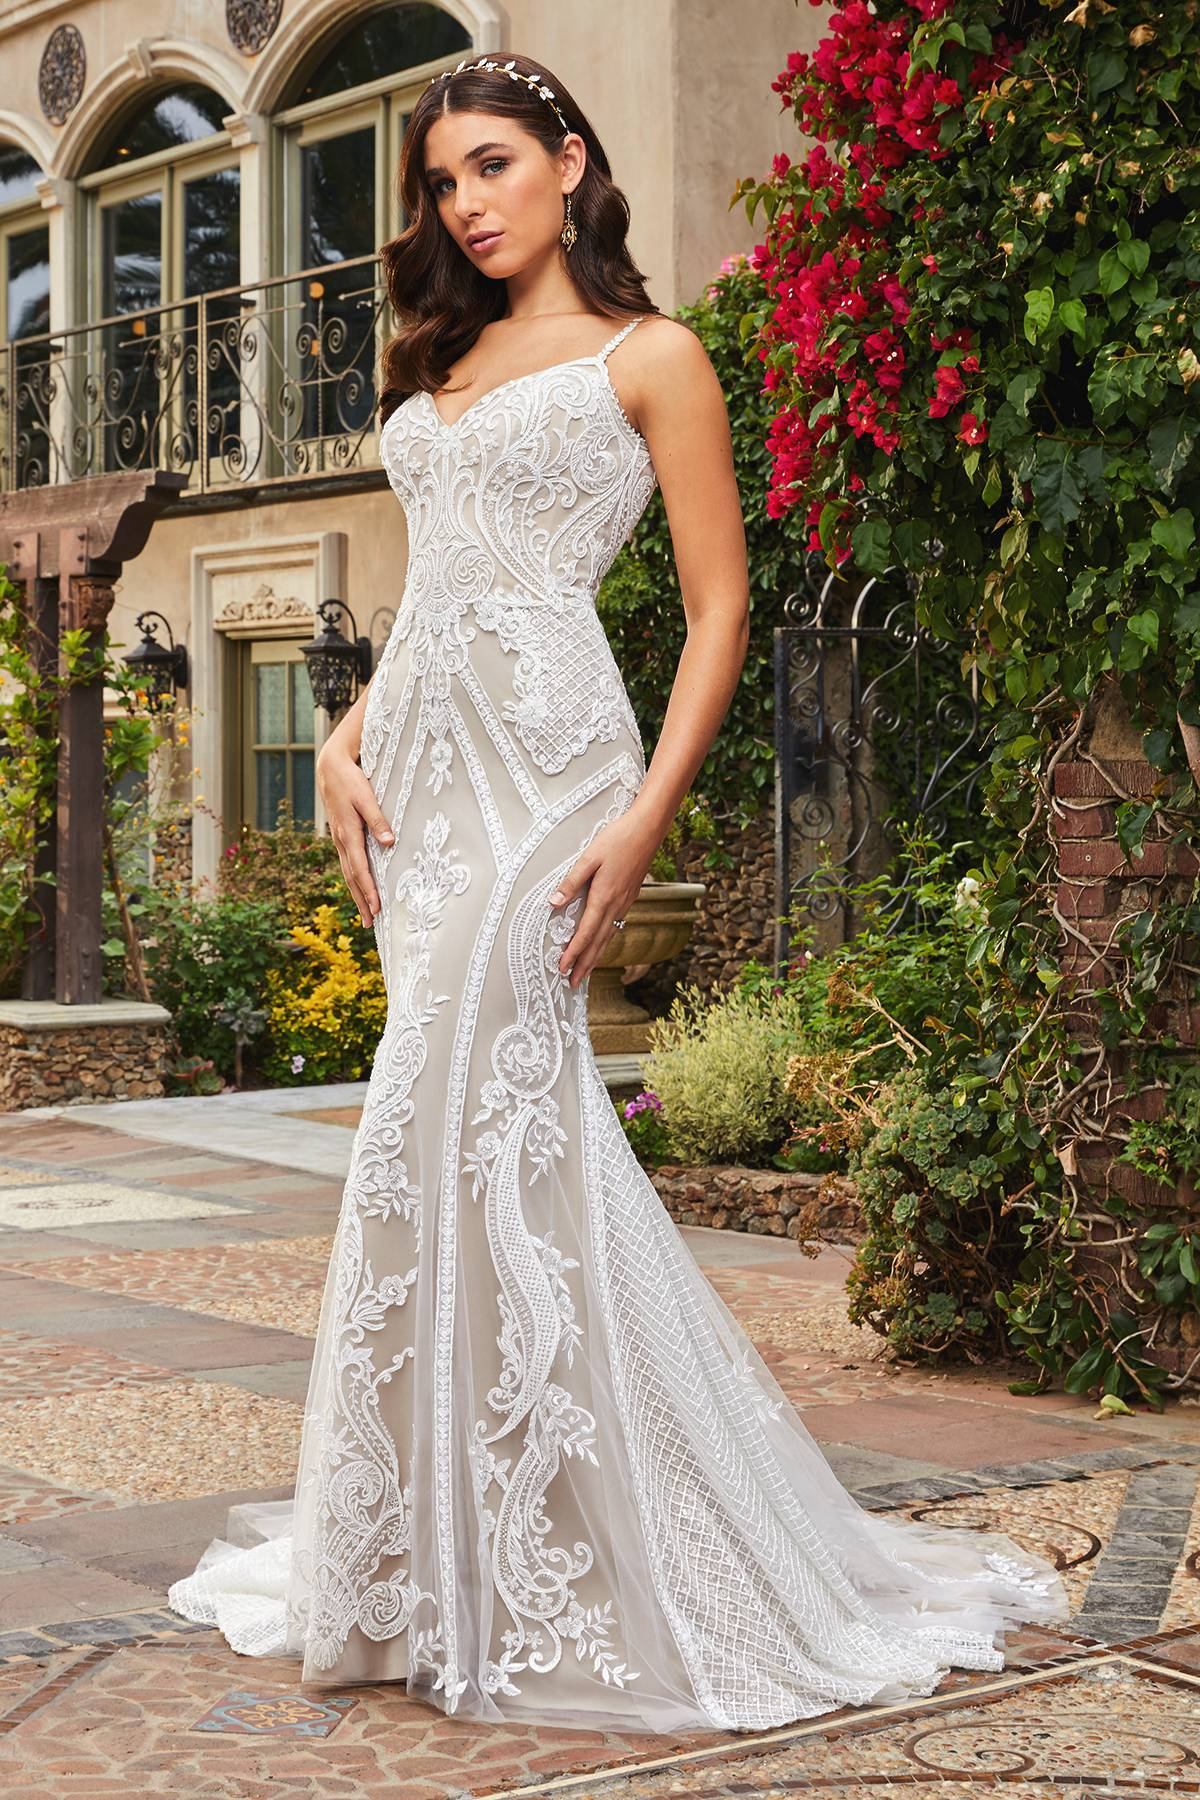 Kendra Style 2405 By Casablanca Bridal Find Your Dream Dress